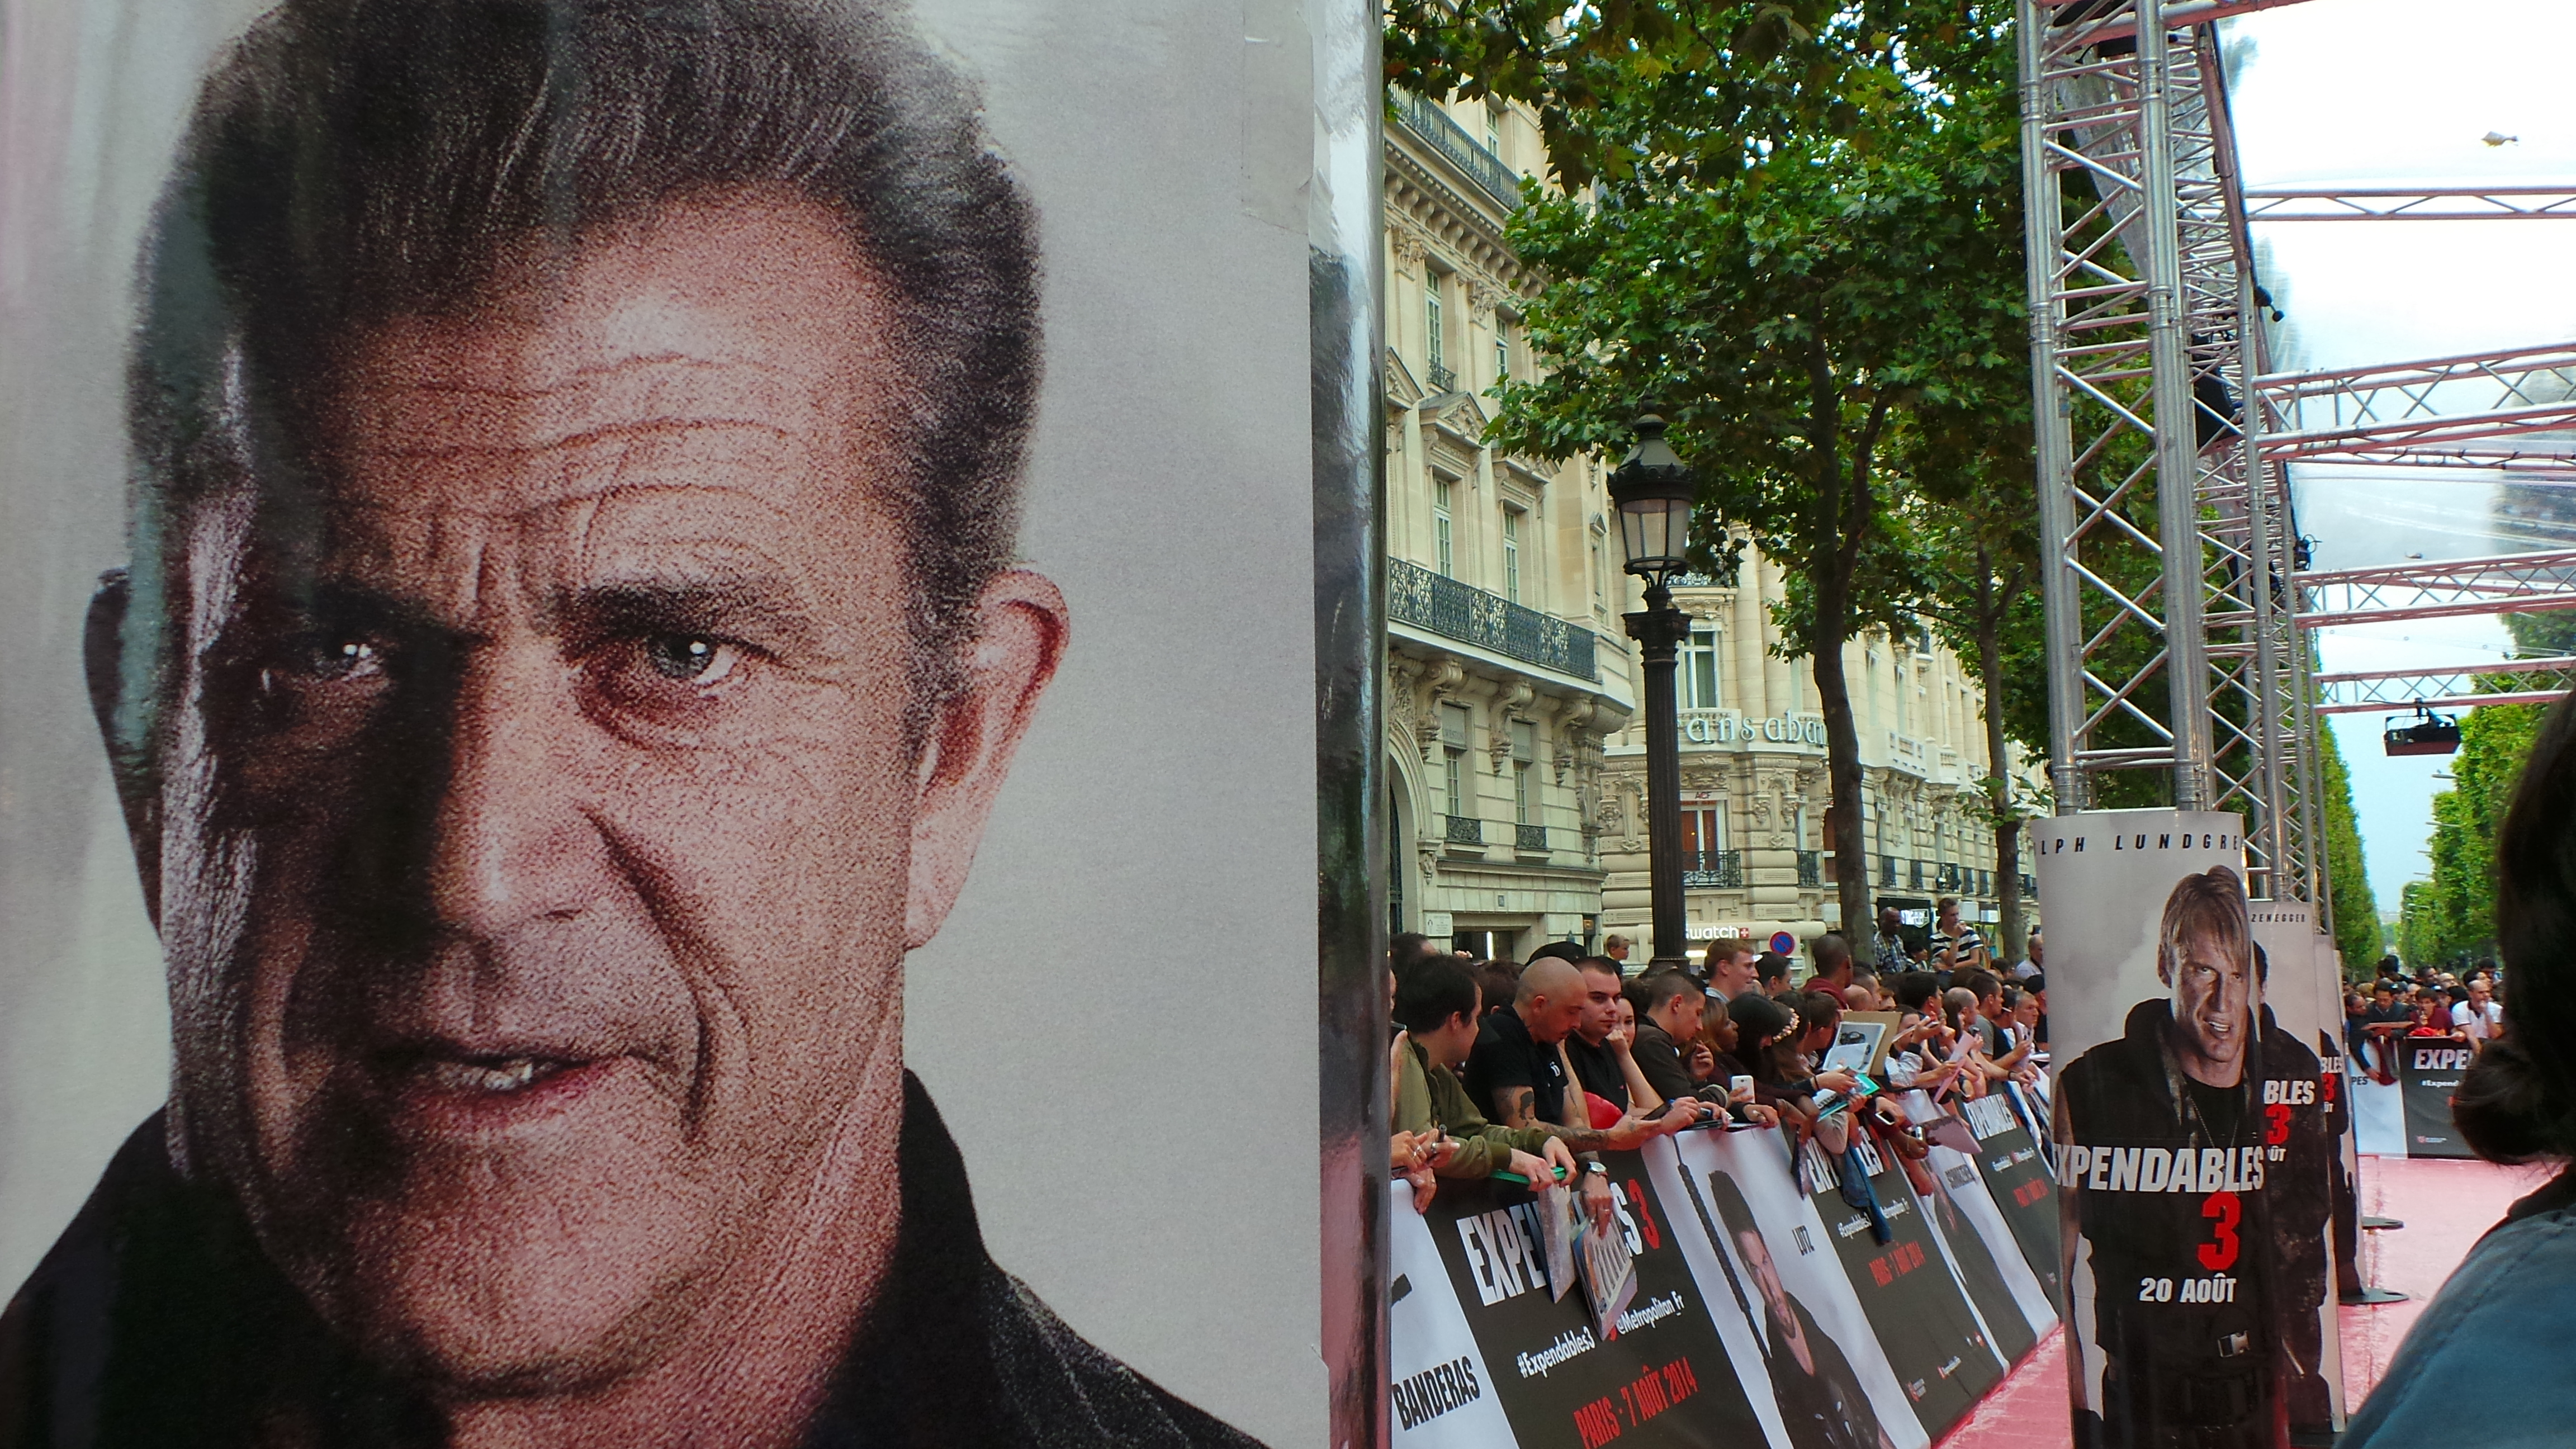 EXPENDABLES 3 - avant première Paris France - Go with the Blog